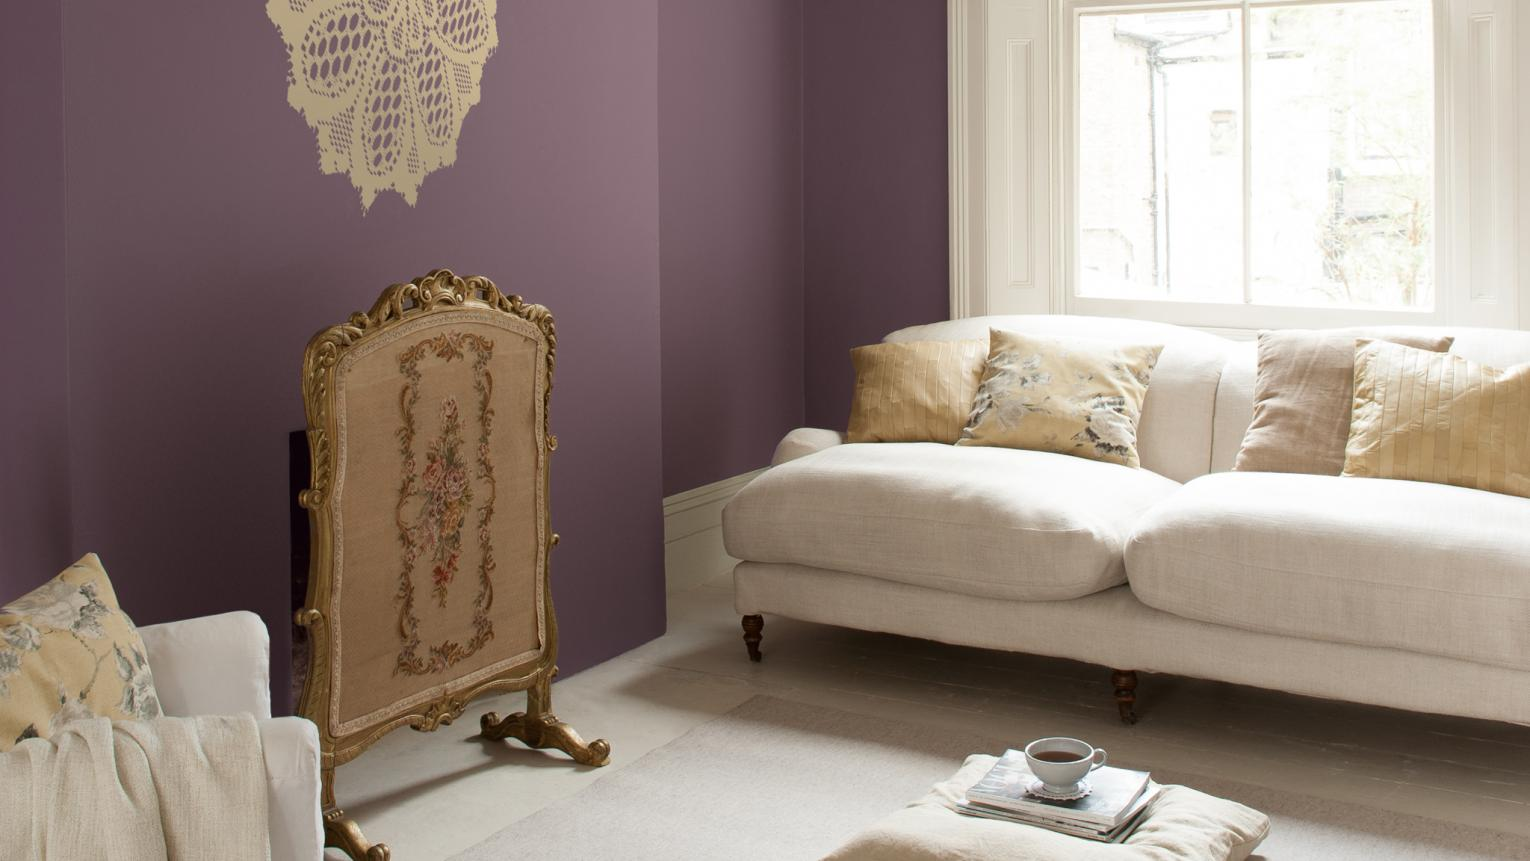 Violet and creamy whites create a dreamy, feminine mood.